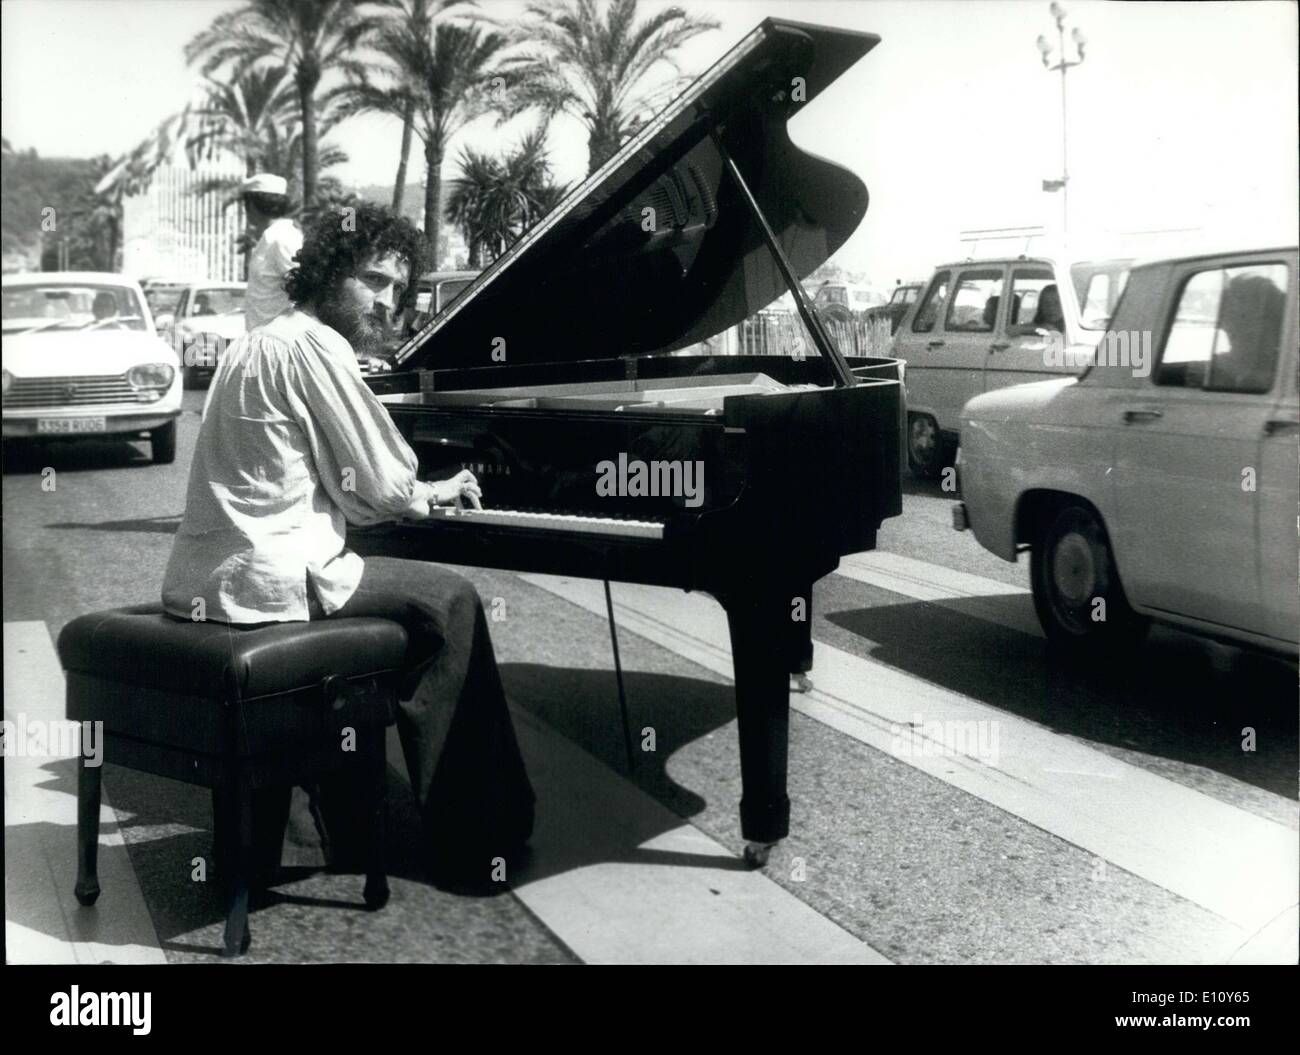 Aug. 18, 1974 - He wrote ''Conerto a une voix'' and is currently on the French Riviera where he is producing his vocal and instrumental ensemble. He is playing his personal piano that he takes with him on all his European tours. - Stock Image